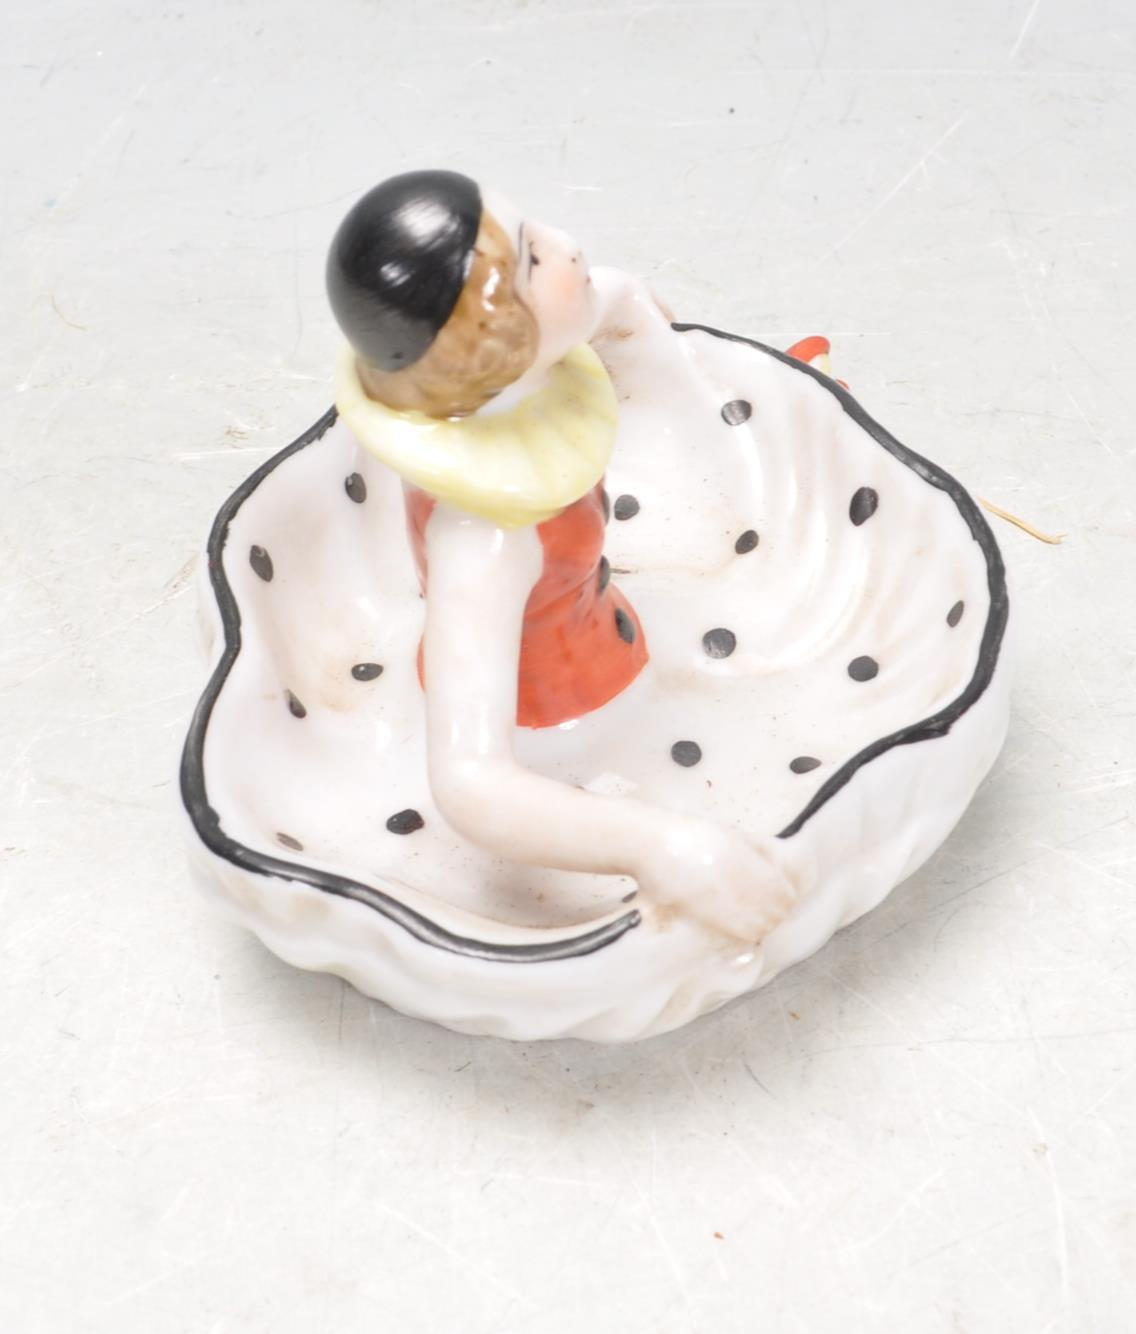 1930S STYLE PIN DISH IN THE FORM OF A DANCER. - Image 4 of 6